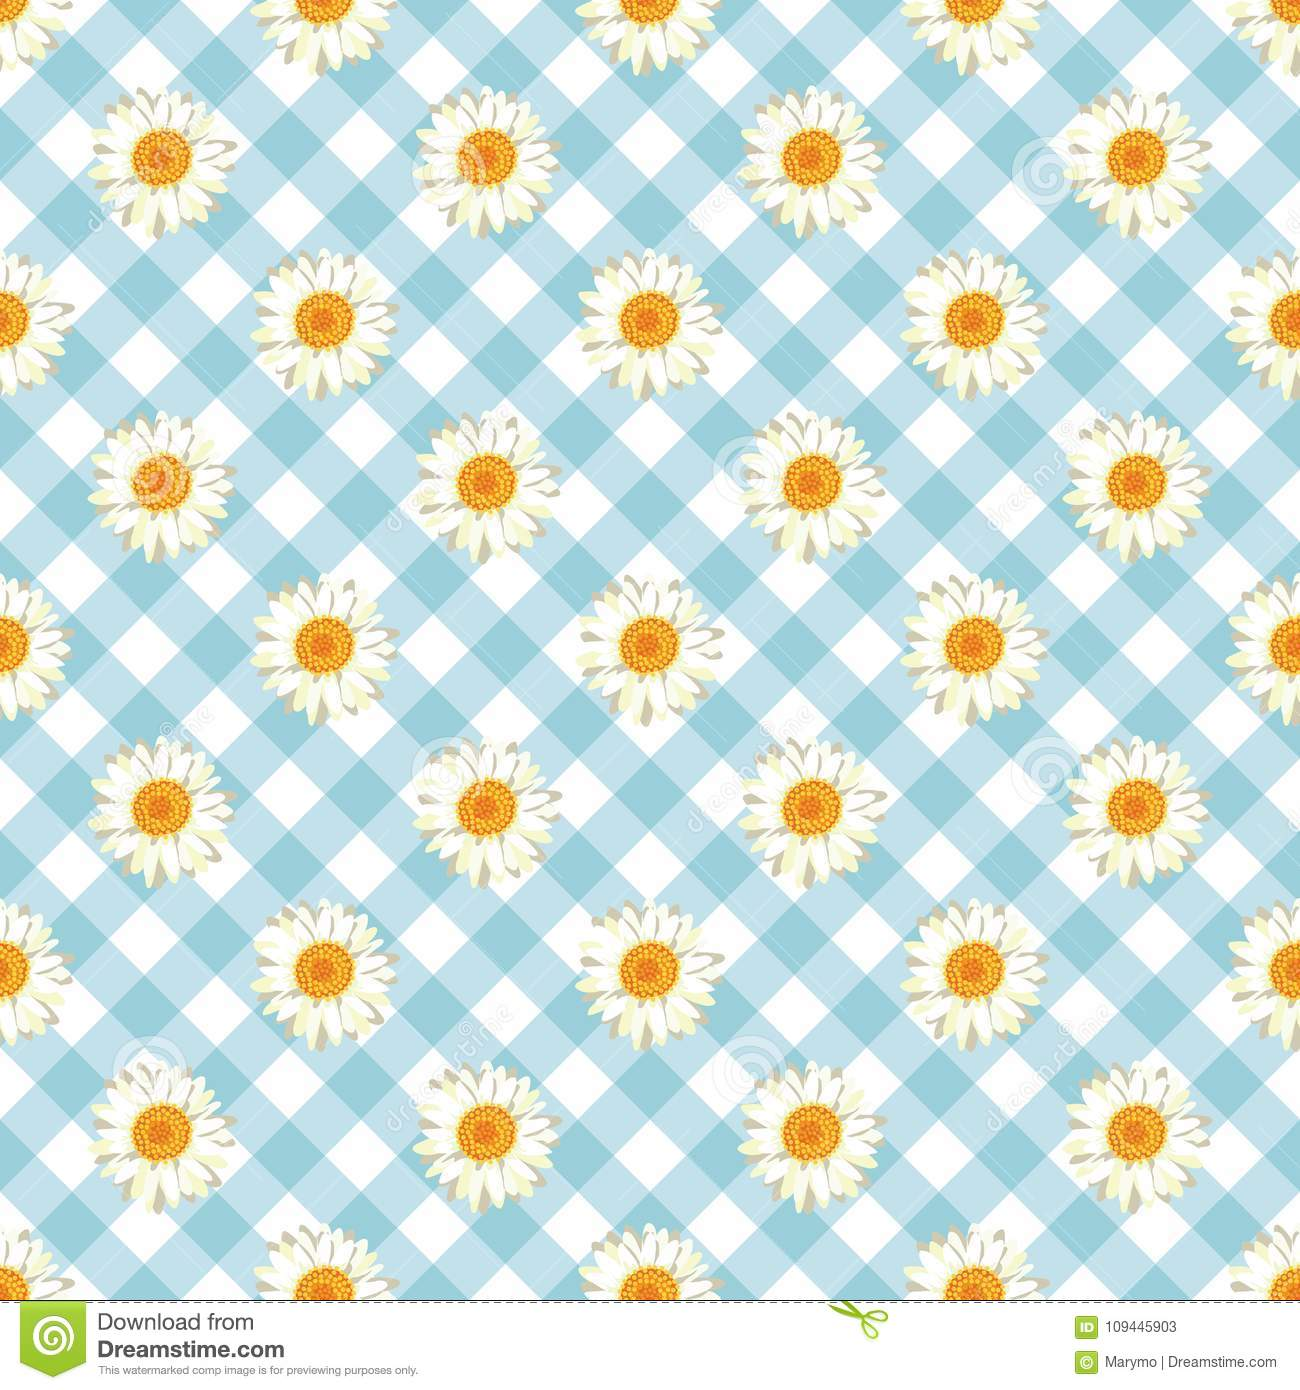 Chamomile seamless pattern. Daisies on blue Gingham Check background.